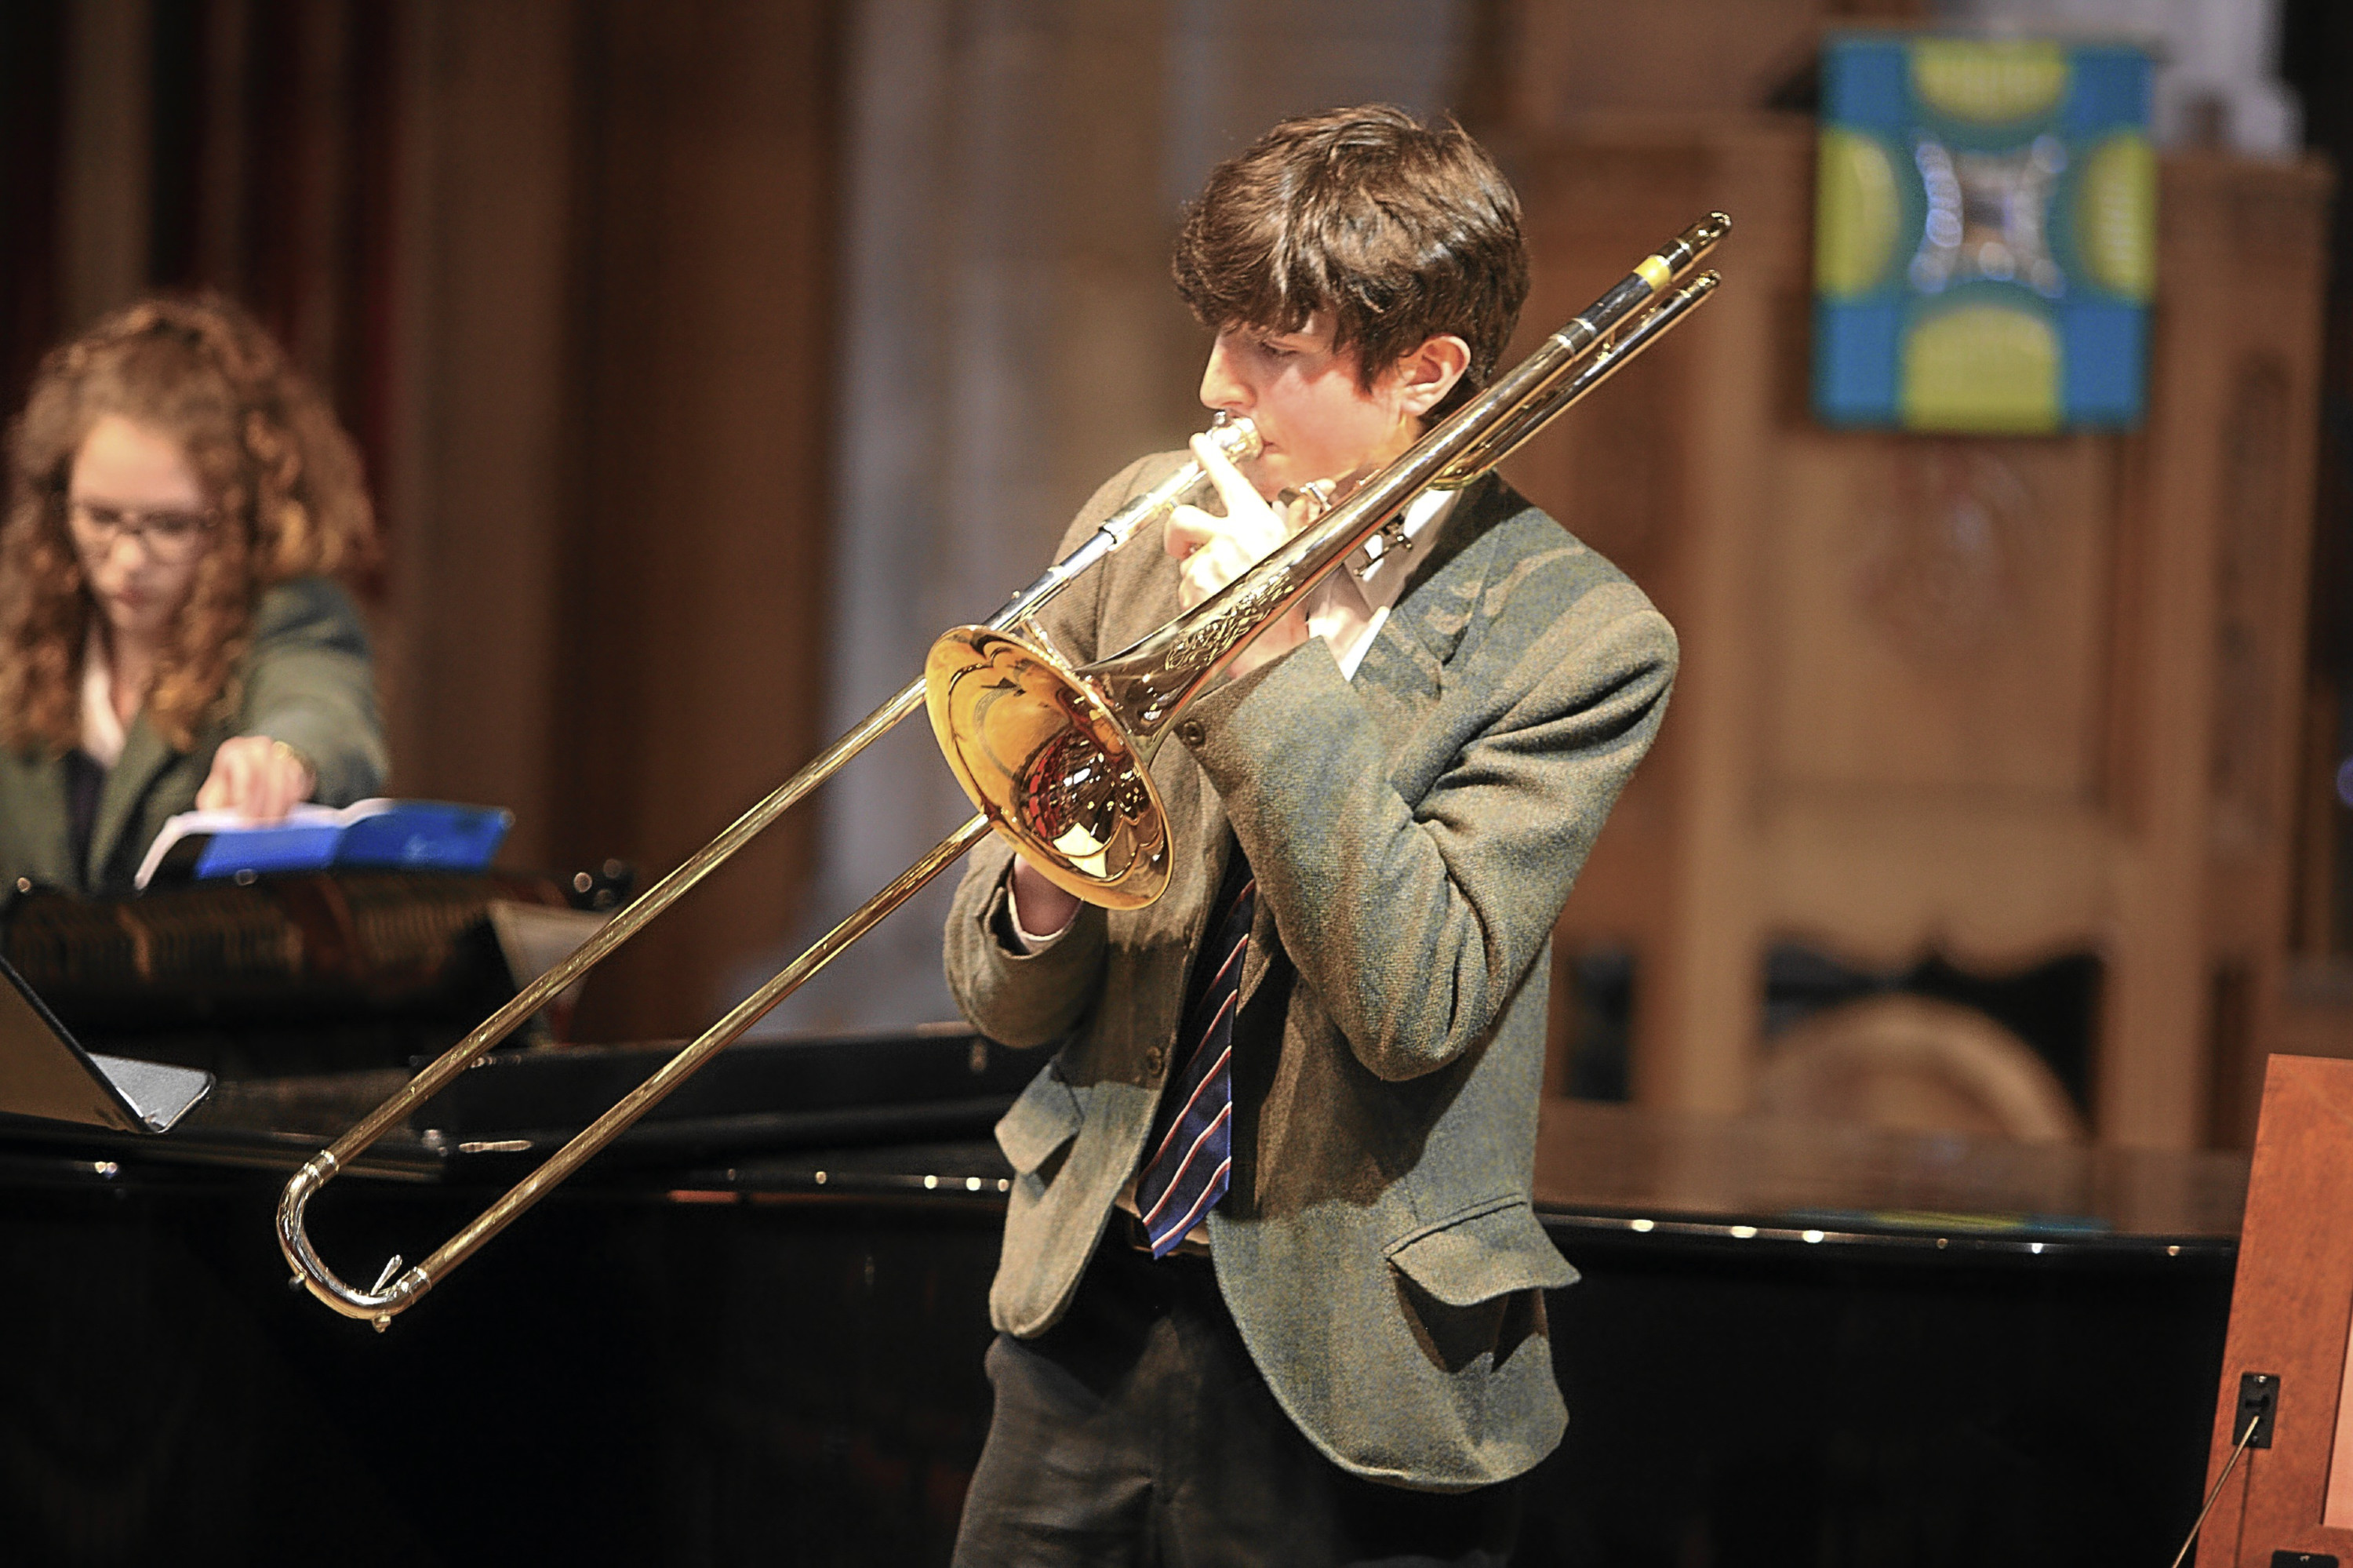 Glenalmond pupil Angus Grierson plays at St John's Kirk in Perth.